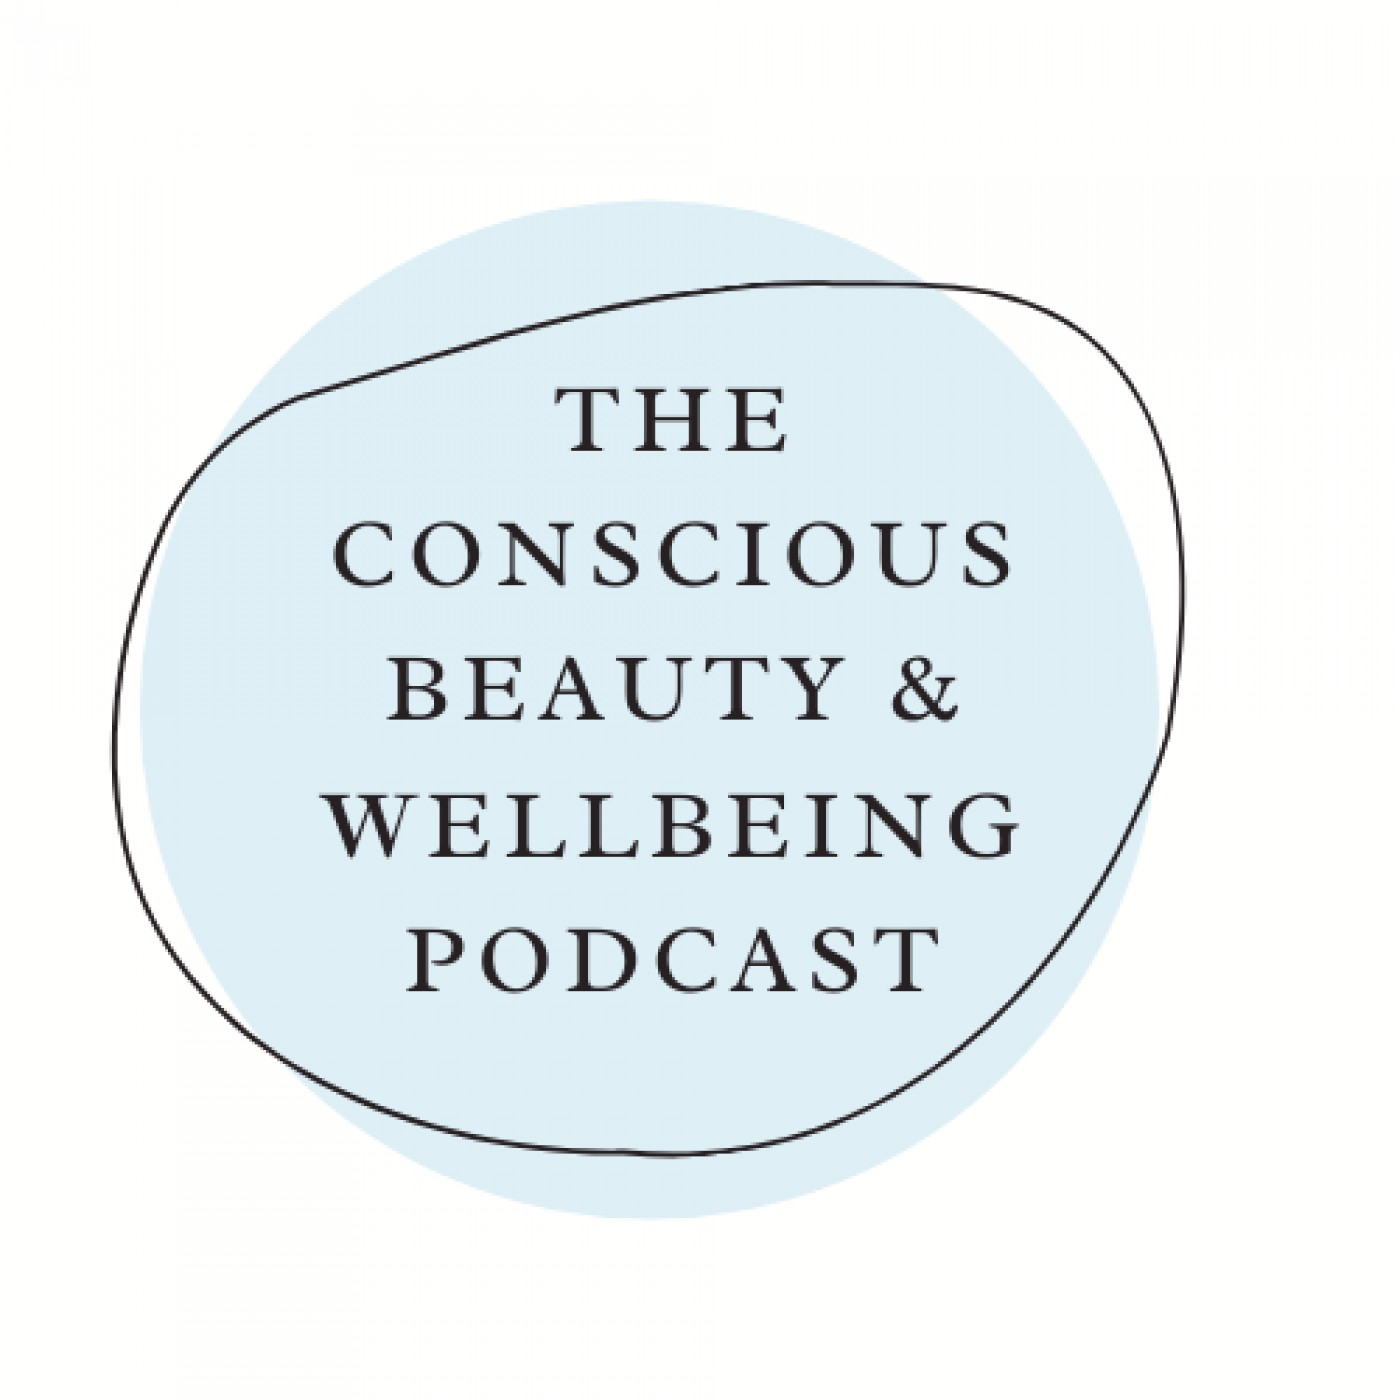 The Conscious Beauty & Wellbeing Podcast